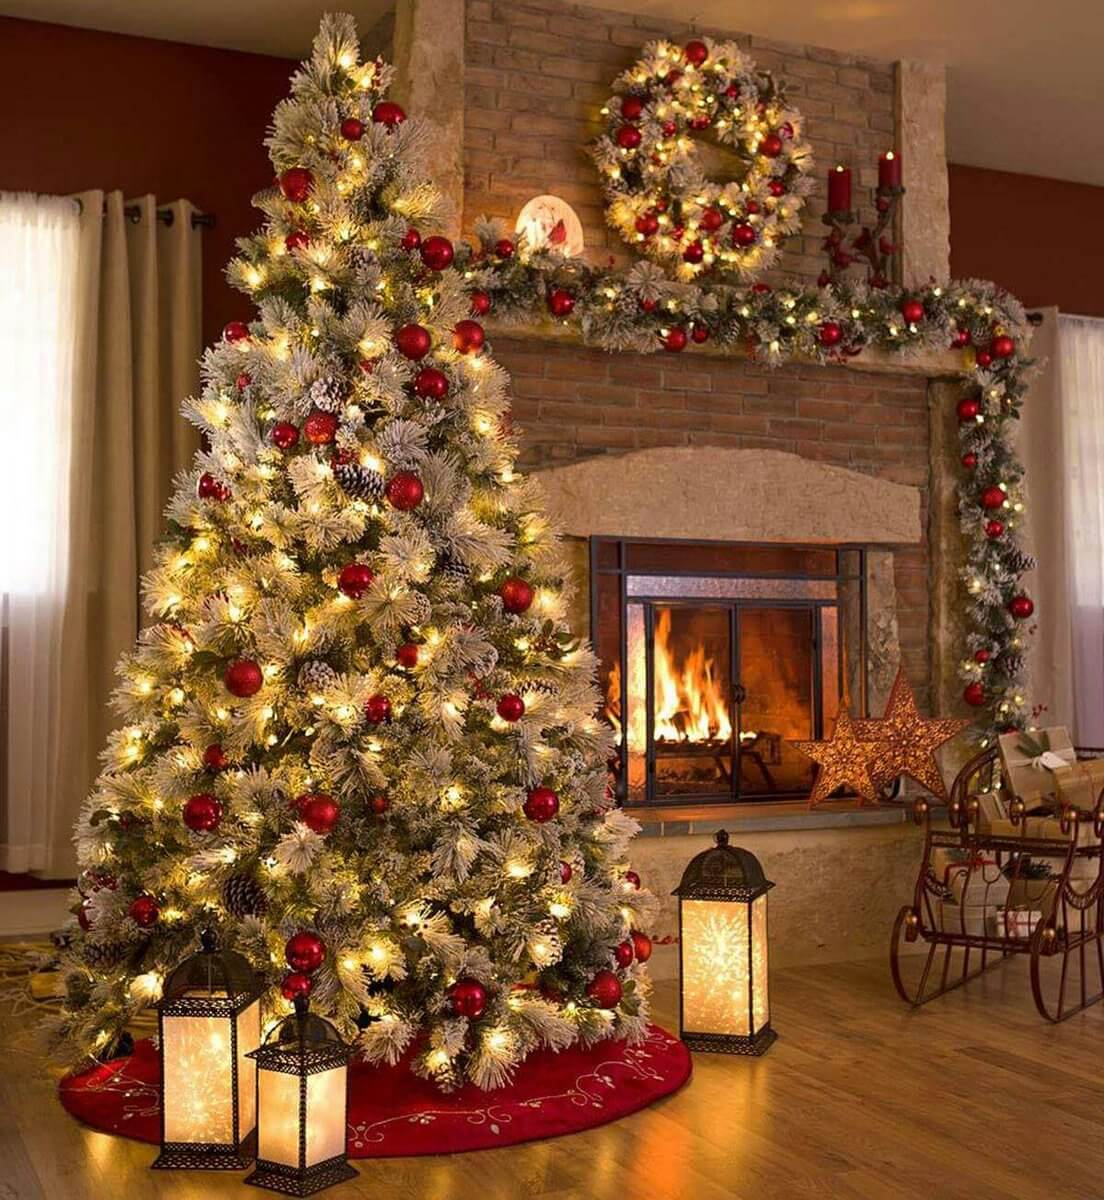 decorate small living room for christmas dried flowers 32 best decor ideas and designs 2019 red berry balls night lamps fireplace